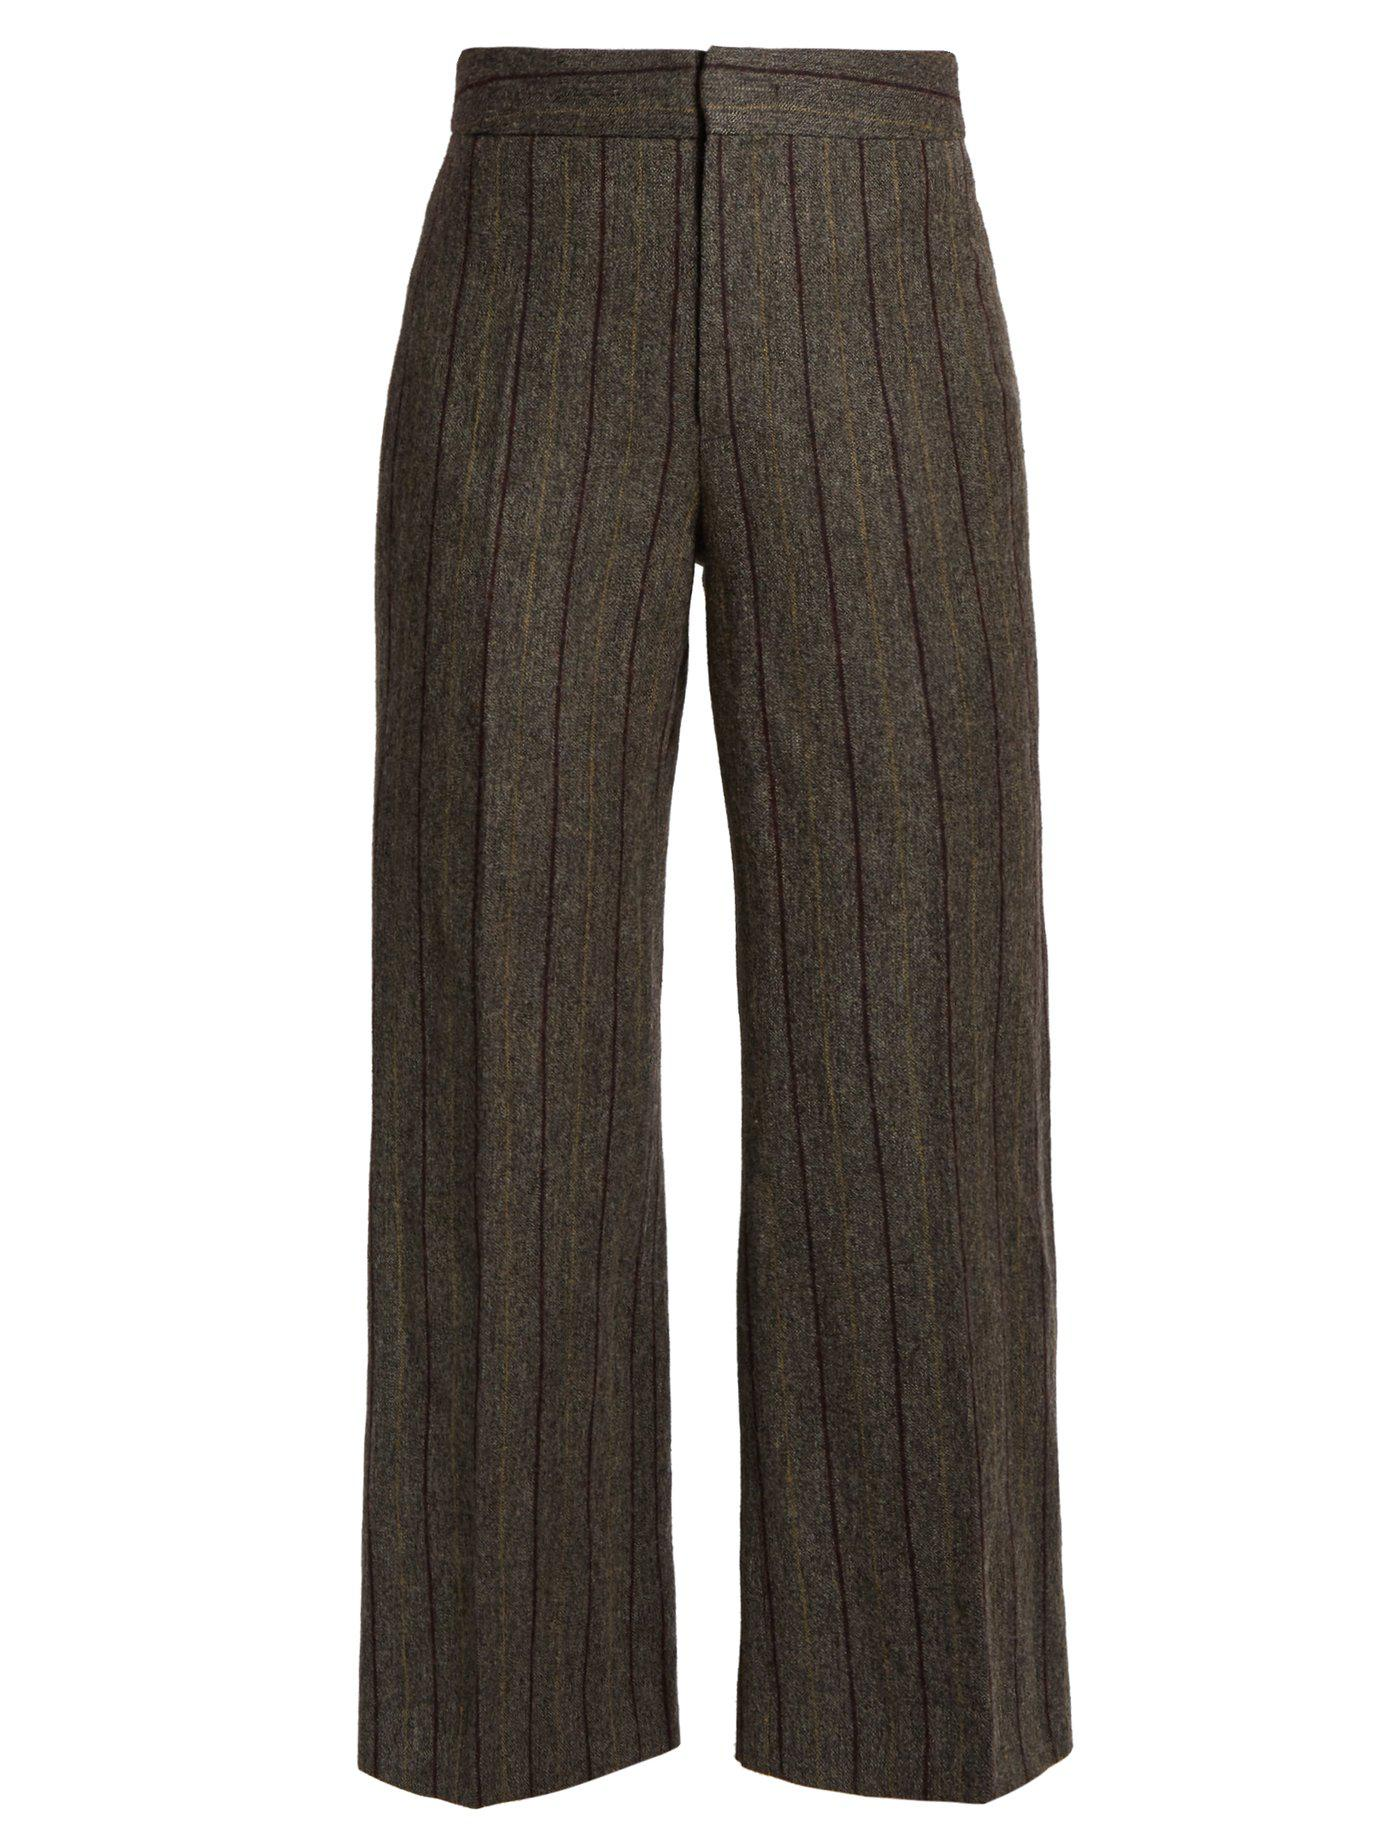 8fd6835e55 isabel-marant-dark-grey-Keroan-Striped-Flared-Cropped-Trousers.jpeg